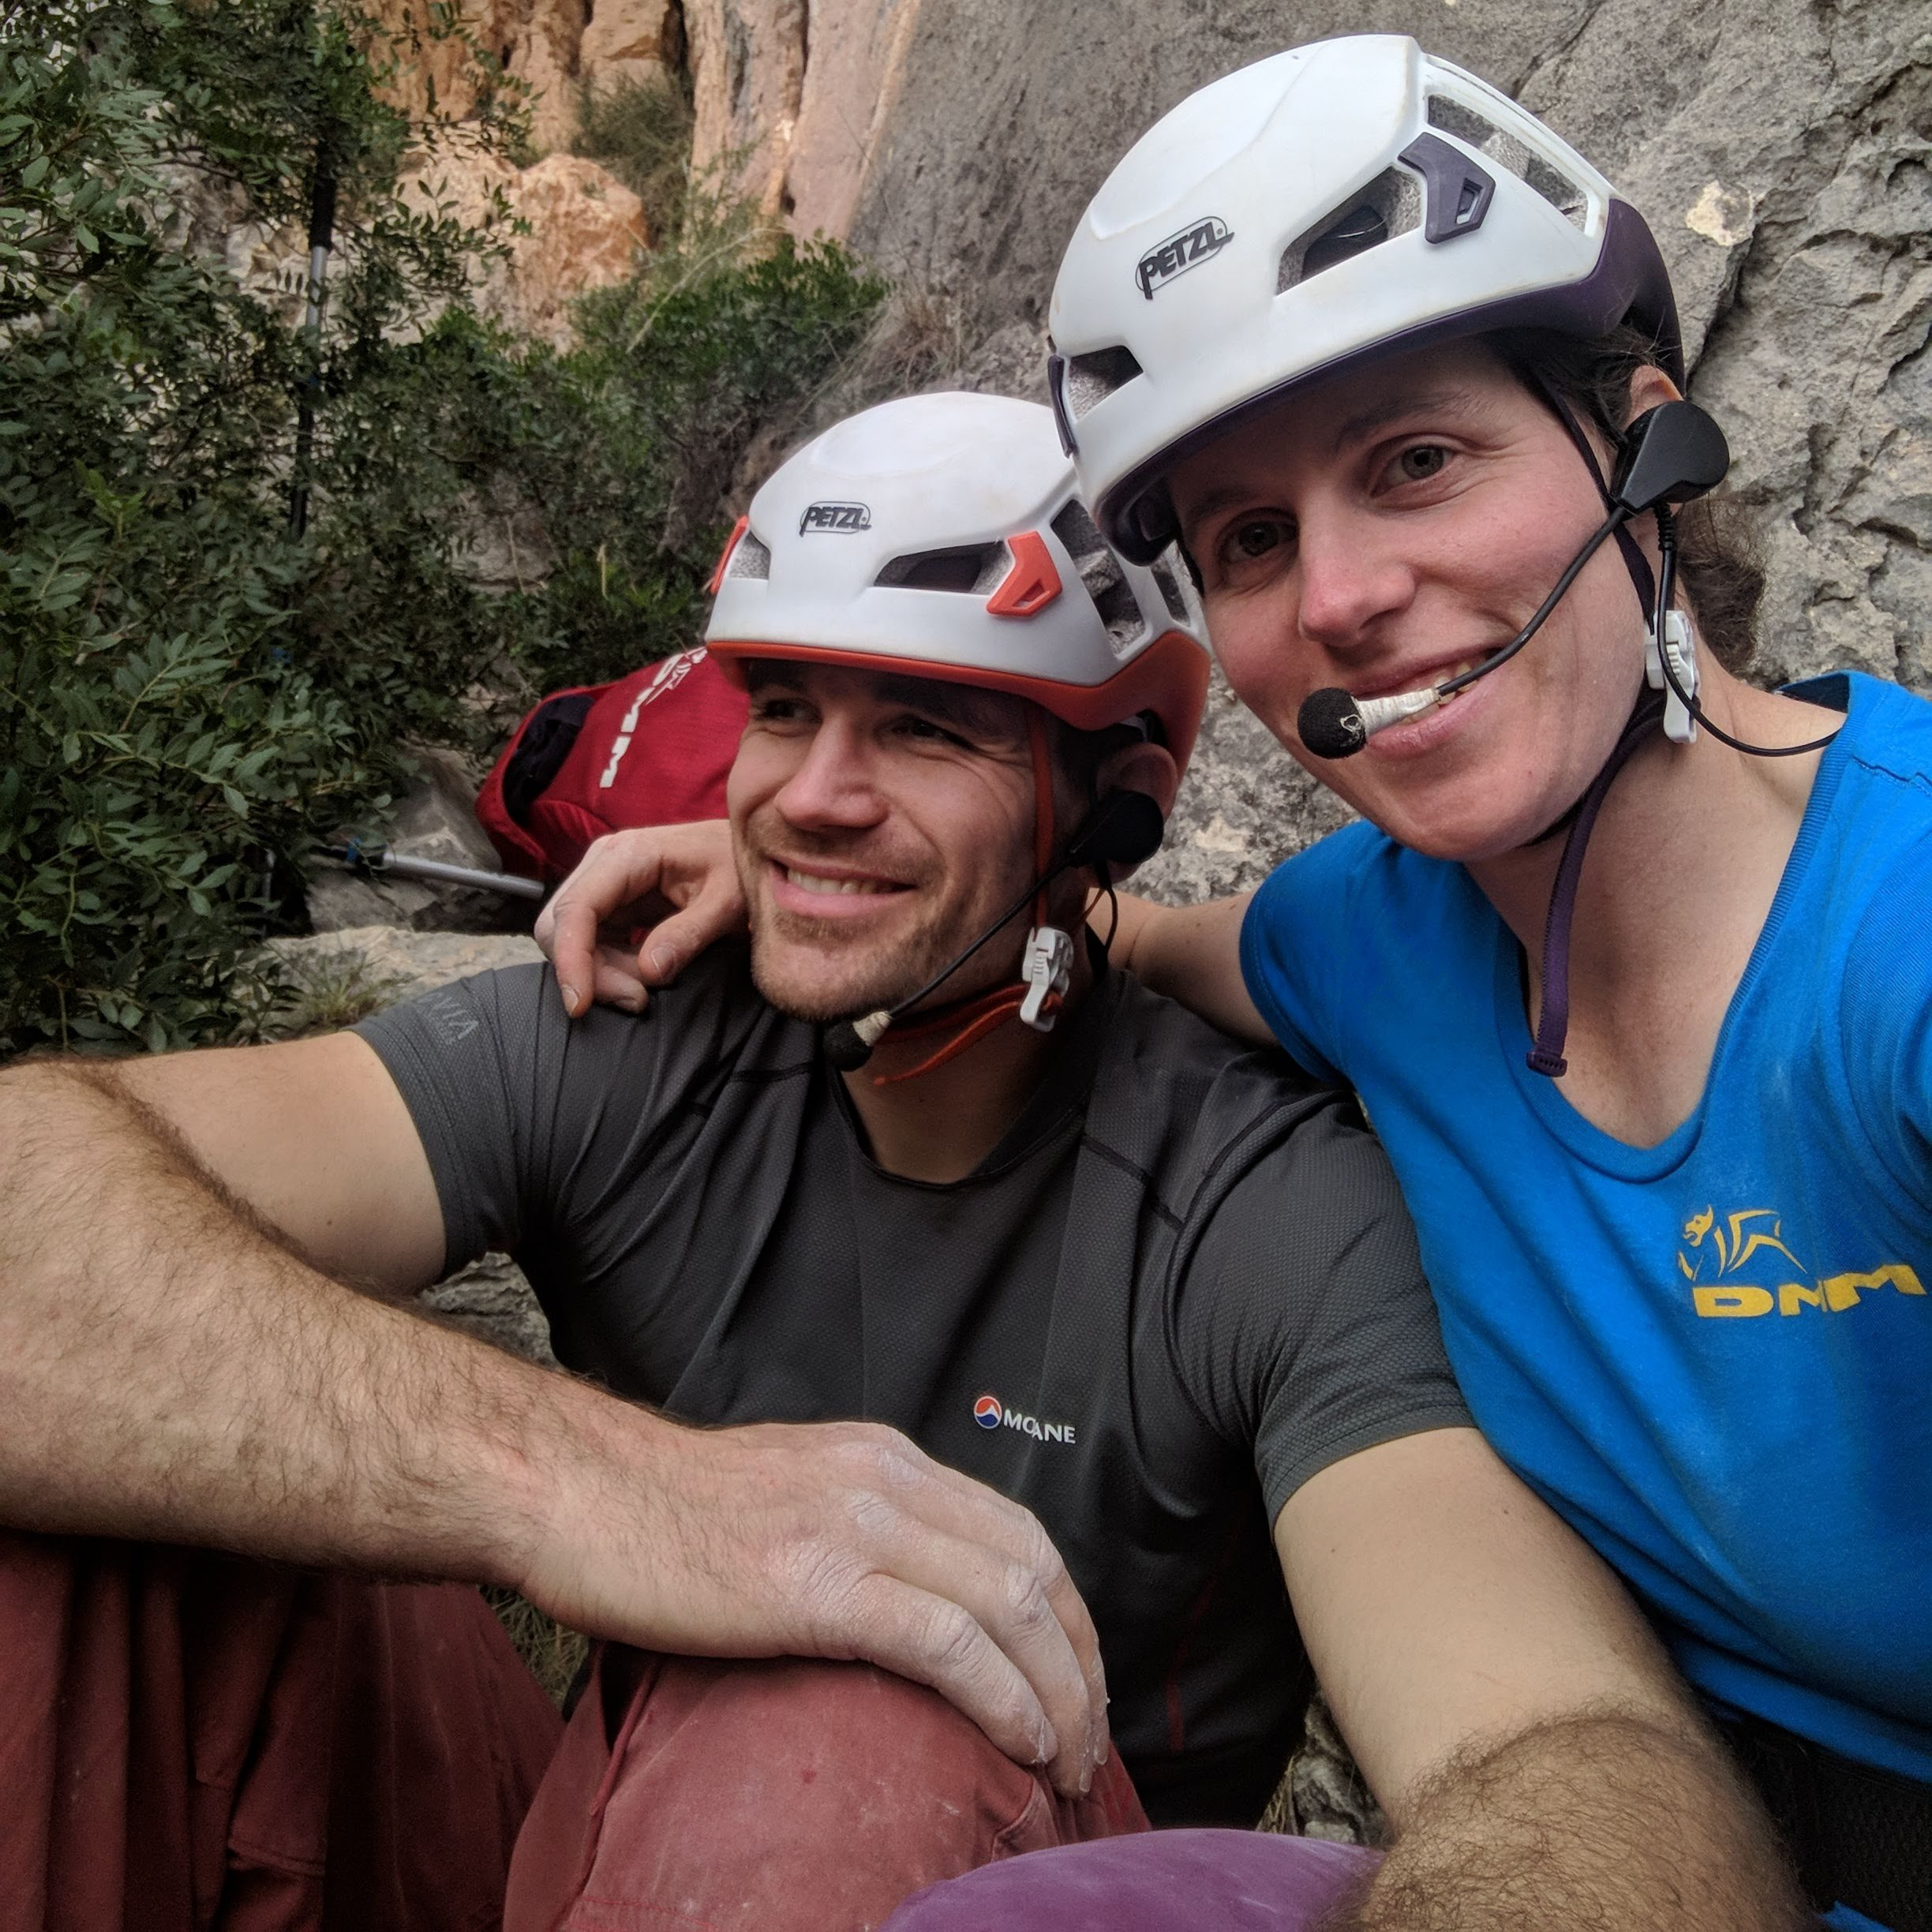 A photo of Jesse and Molly with the helmets and headsets on, sitting at the base of a crag. They both have big smiles on their faces.